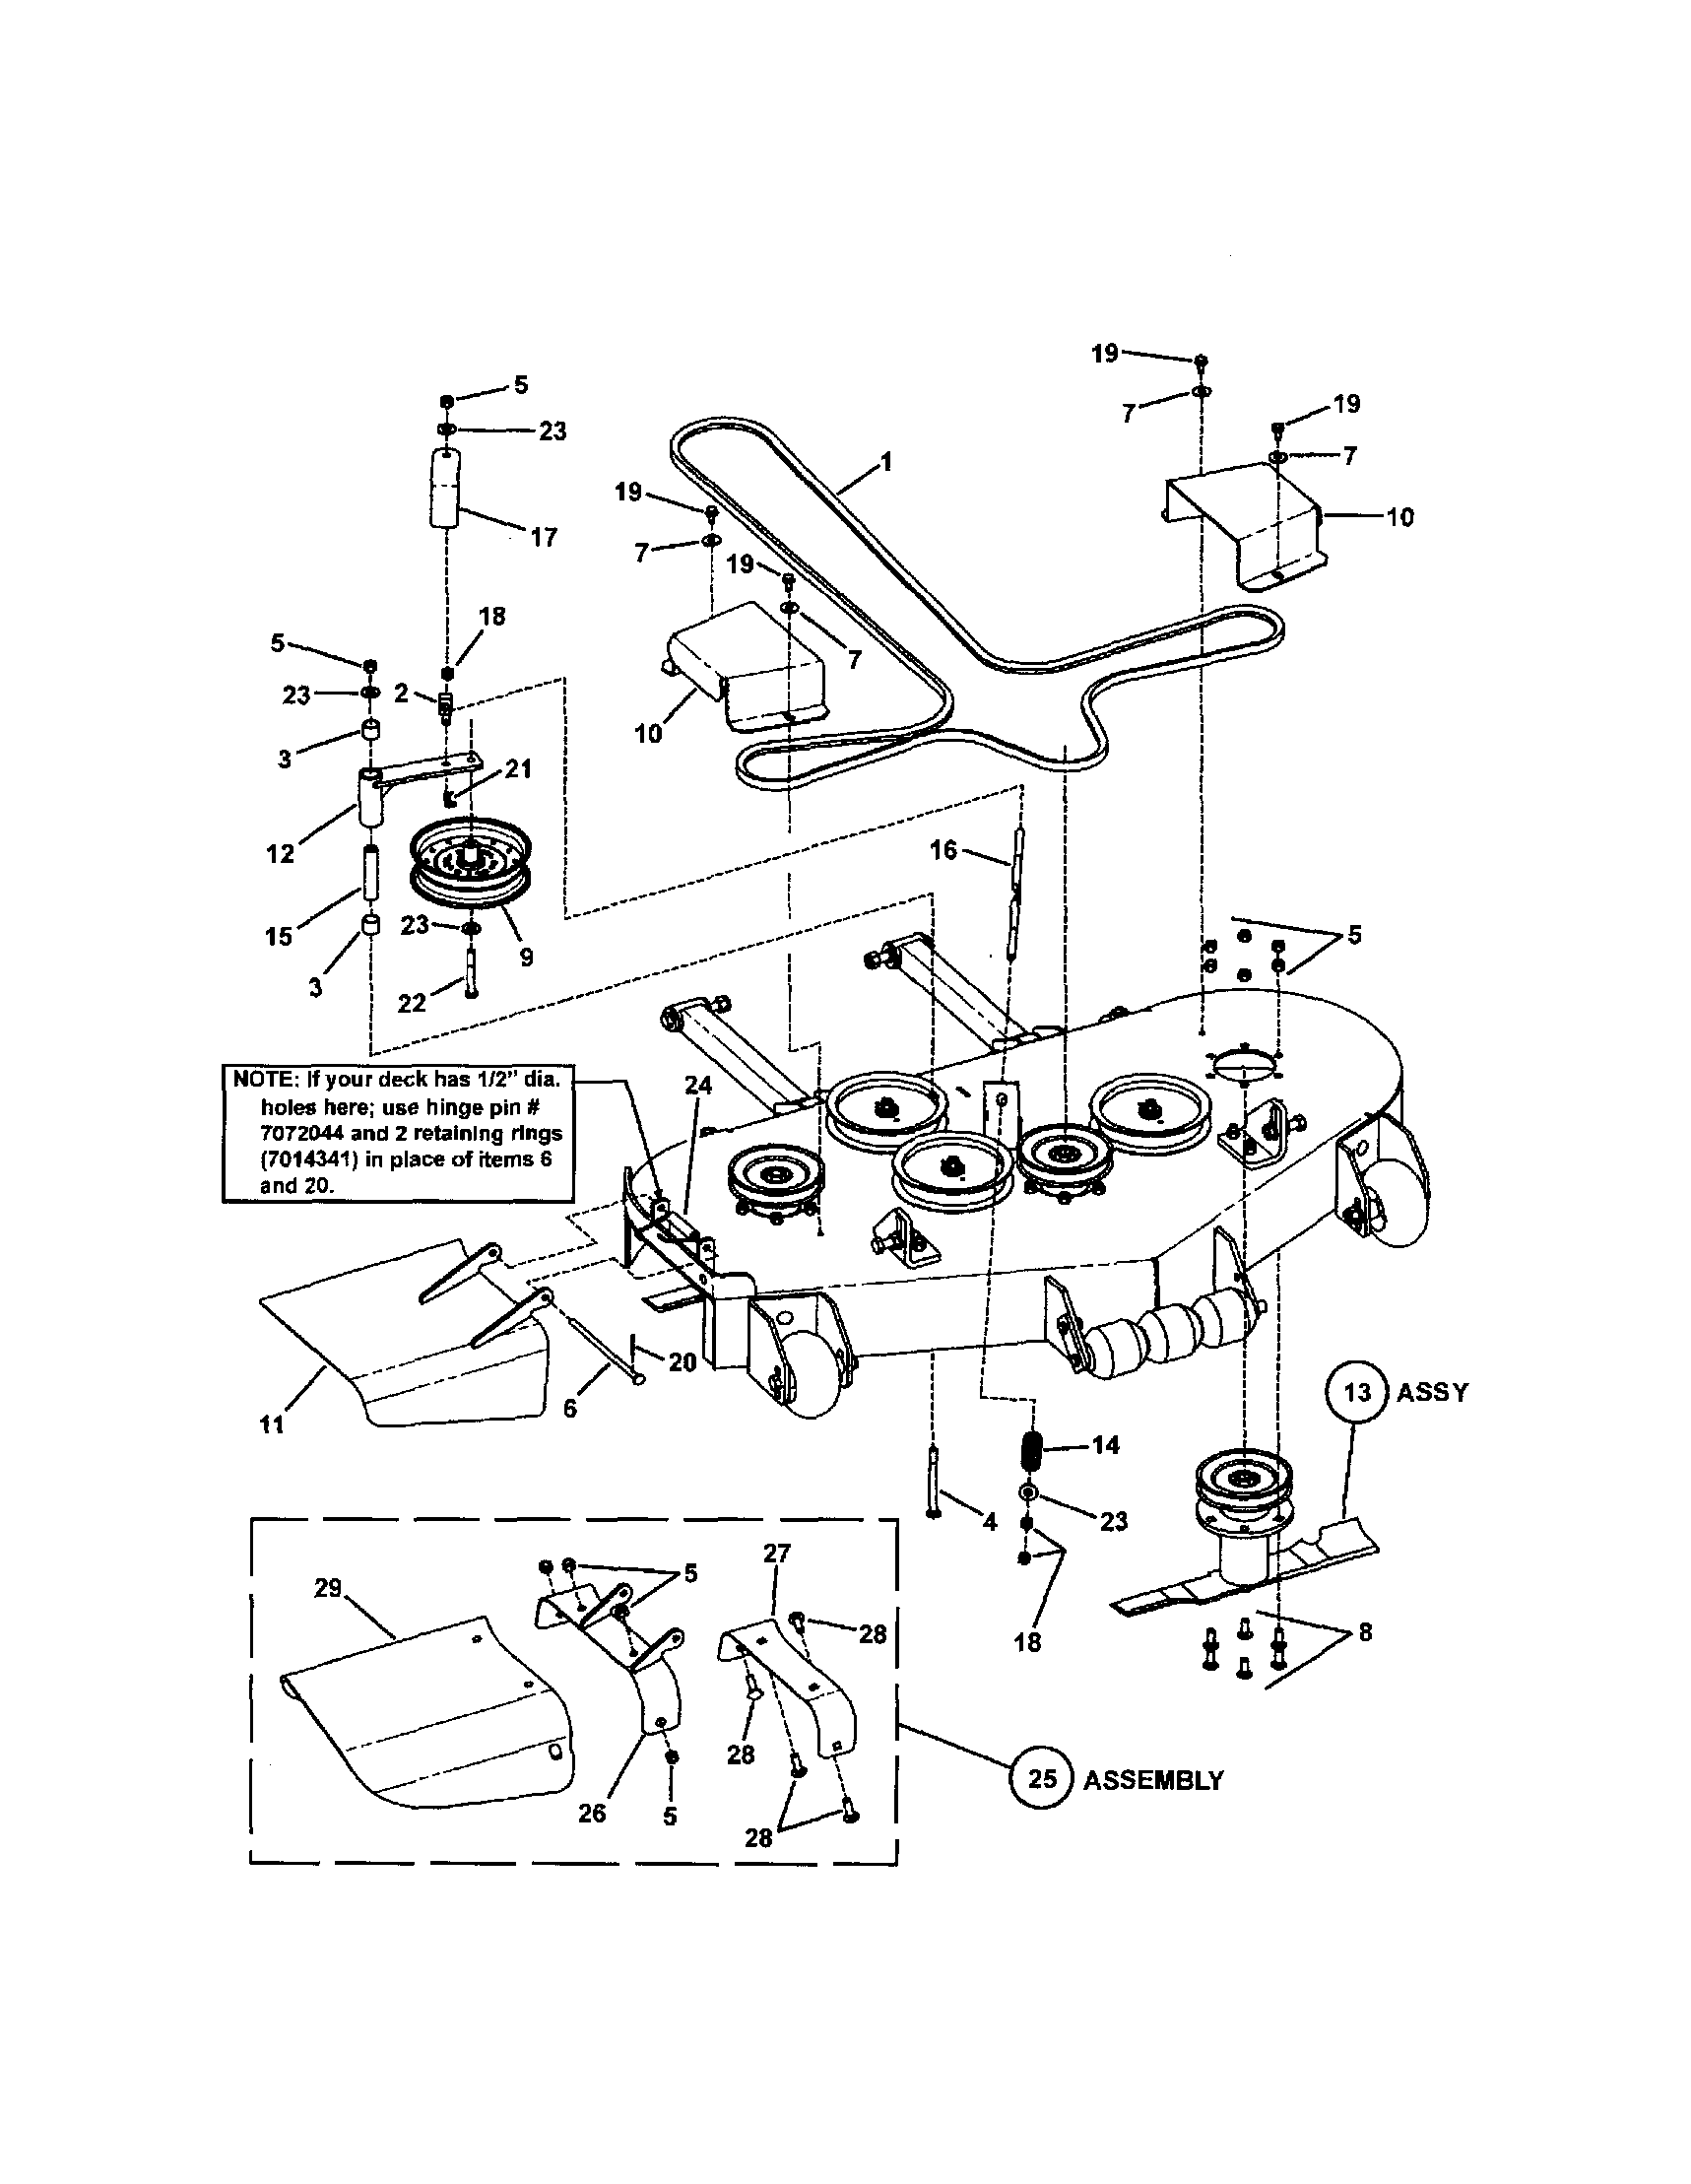 Zero Turn Mower Drawing At Free For Personal Use Mtd Wiring Schematic 1717x2217 Snapper Parts Model Czt19480kwv Sears Partsdirect